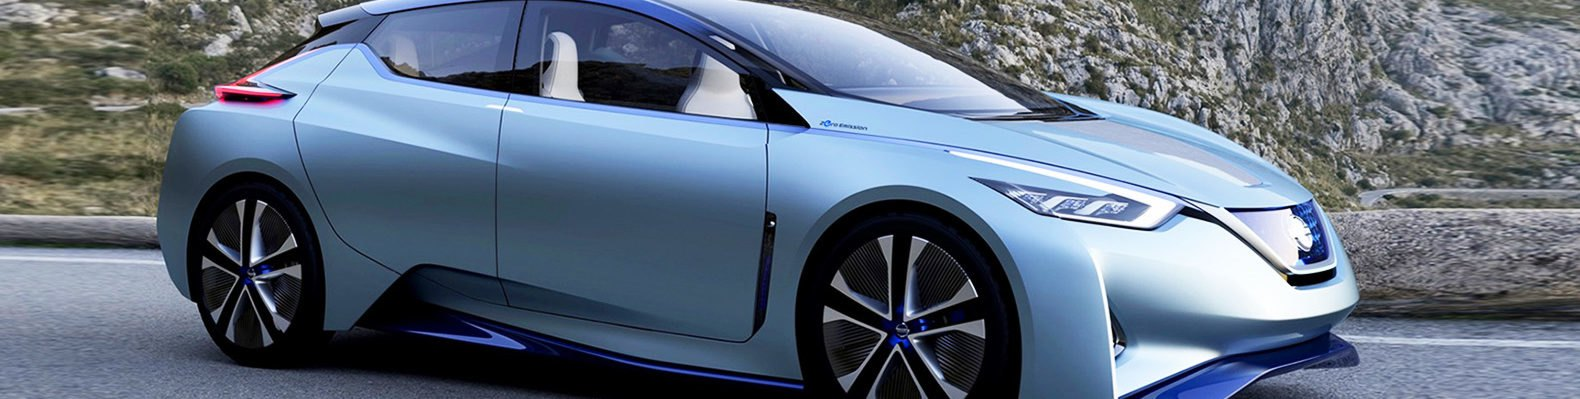 Nissan is working on a new 340-mile-range electric car | Inhabitat ...